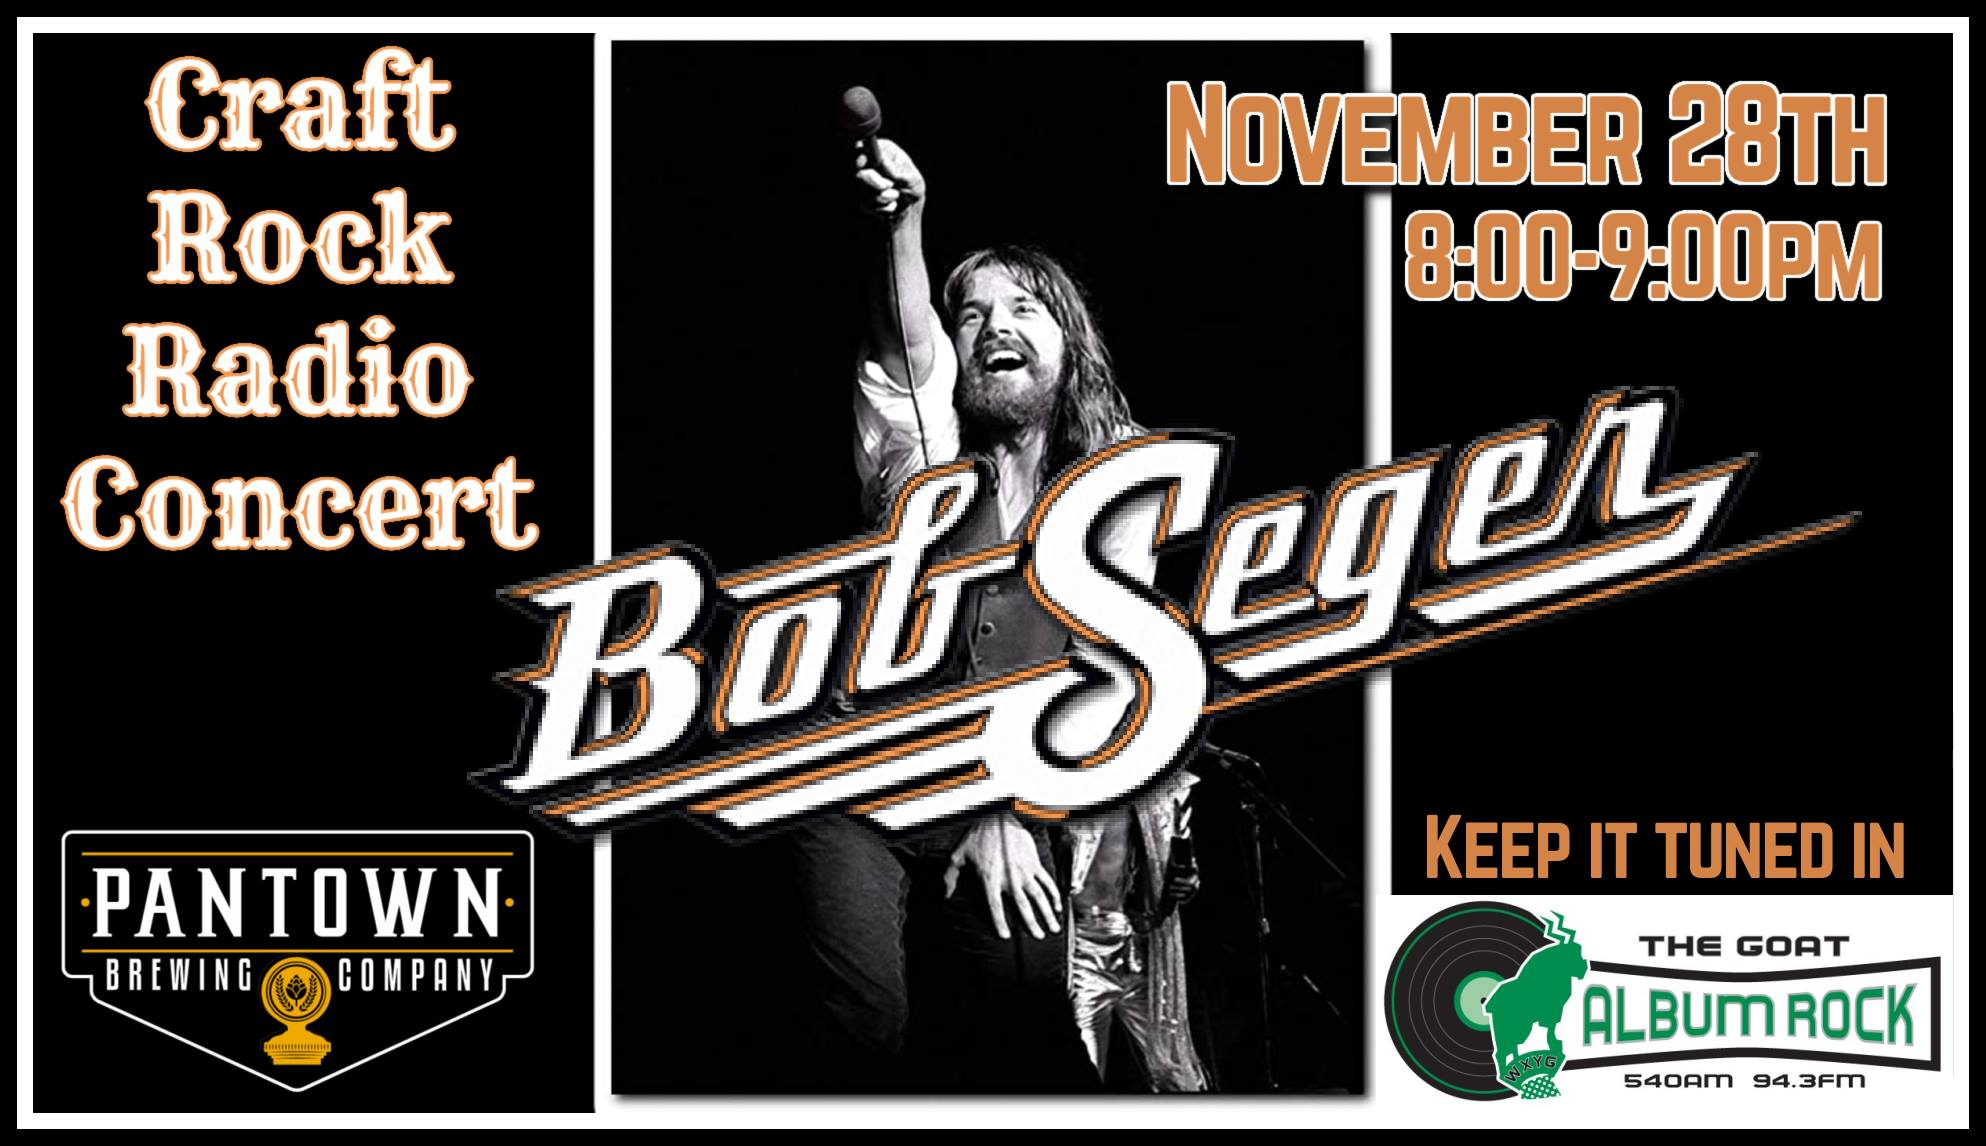 Craft Rock Radio Concert: Bob Seger